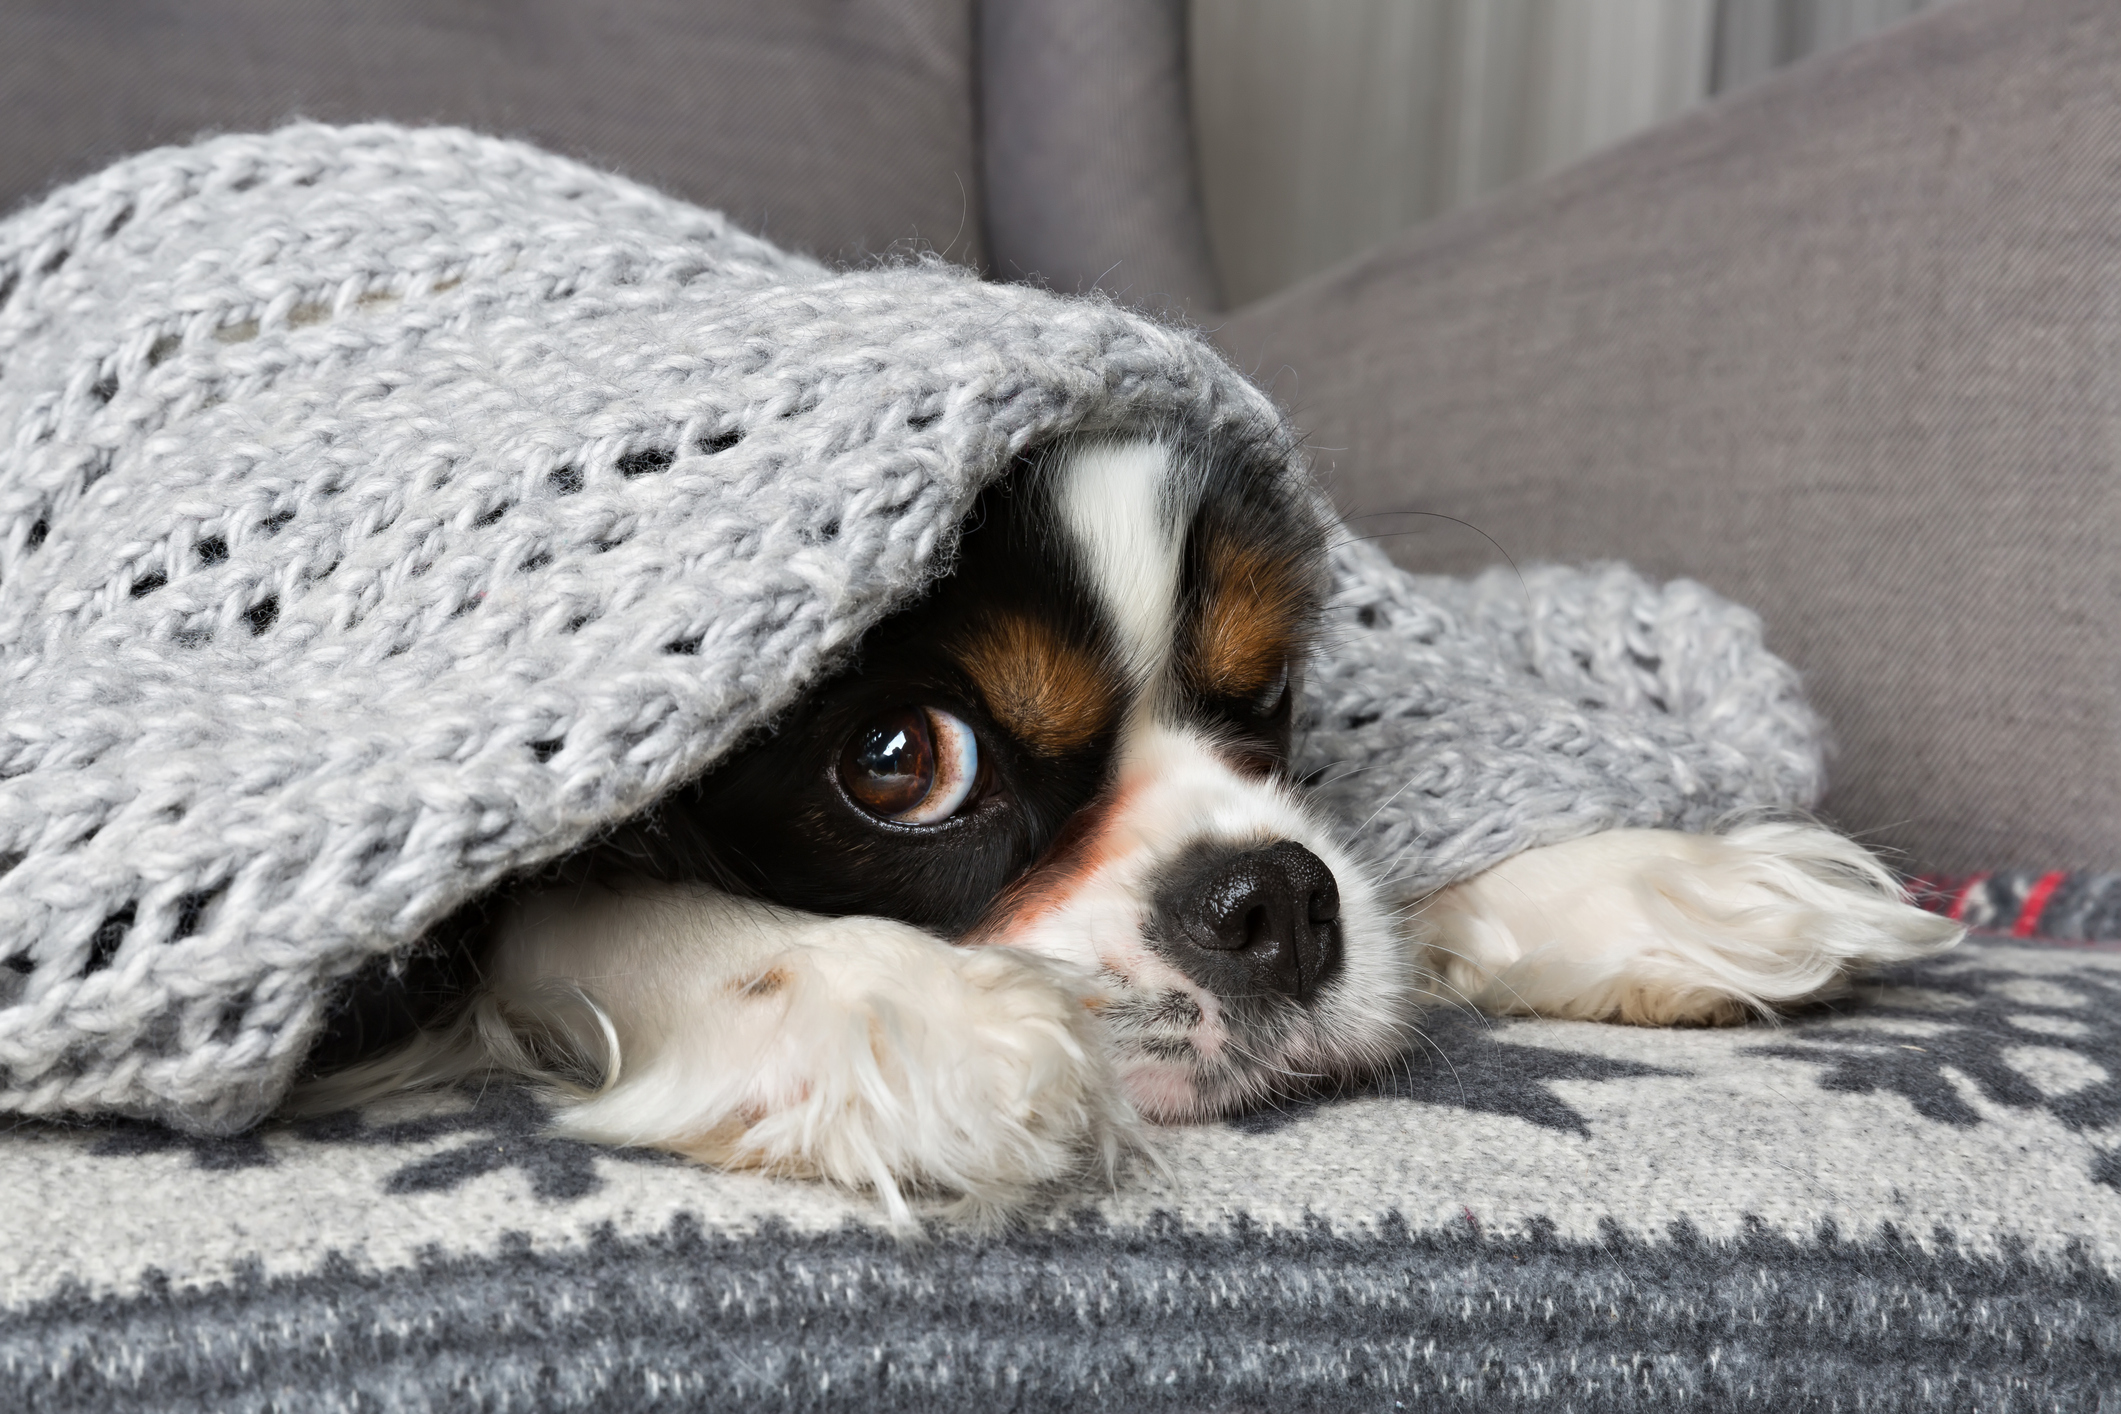 A cold King Charles spaniel puppy hides under a blanket